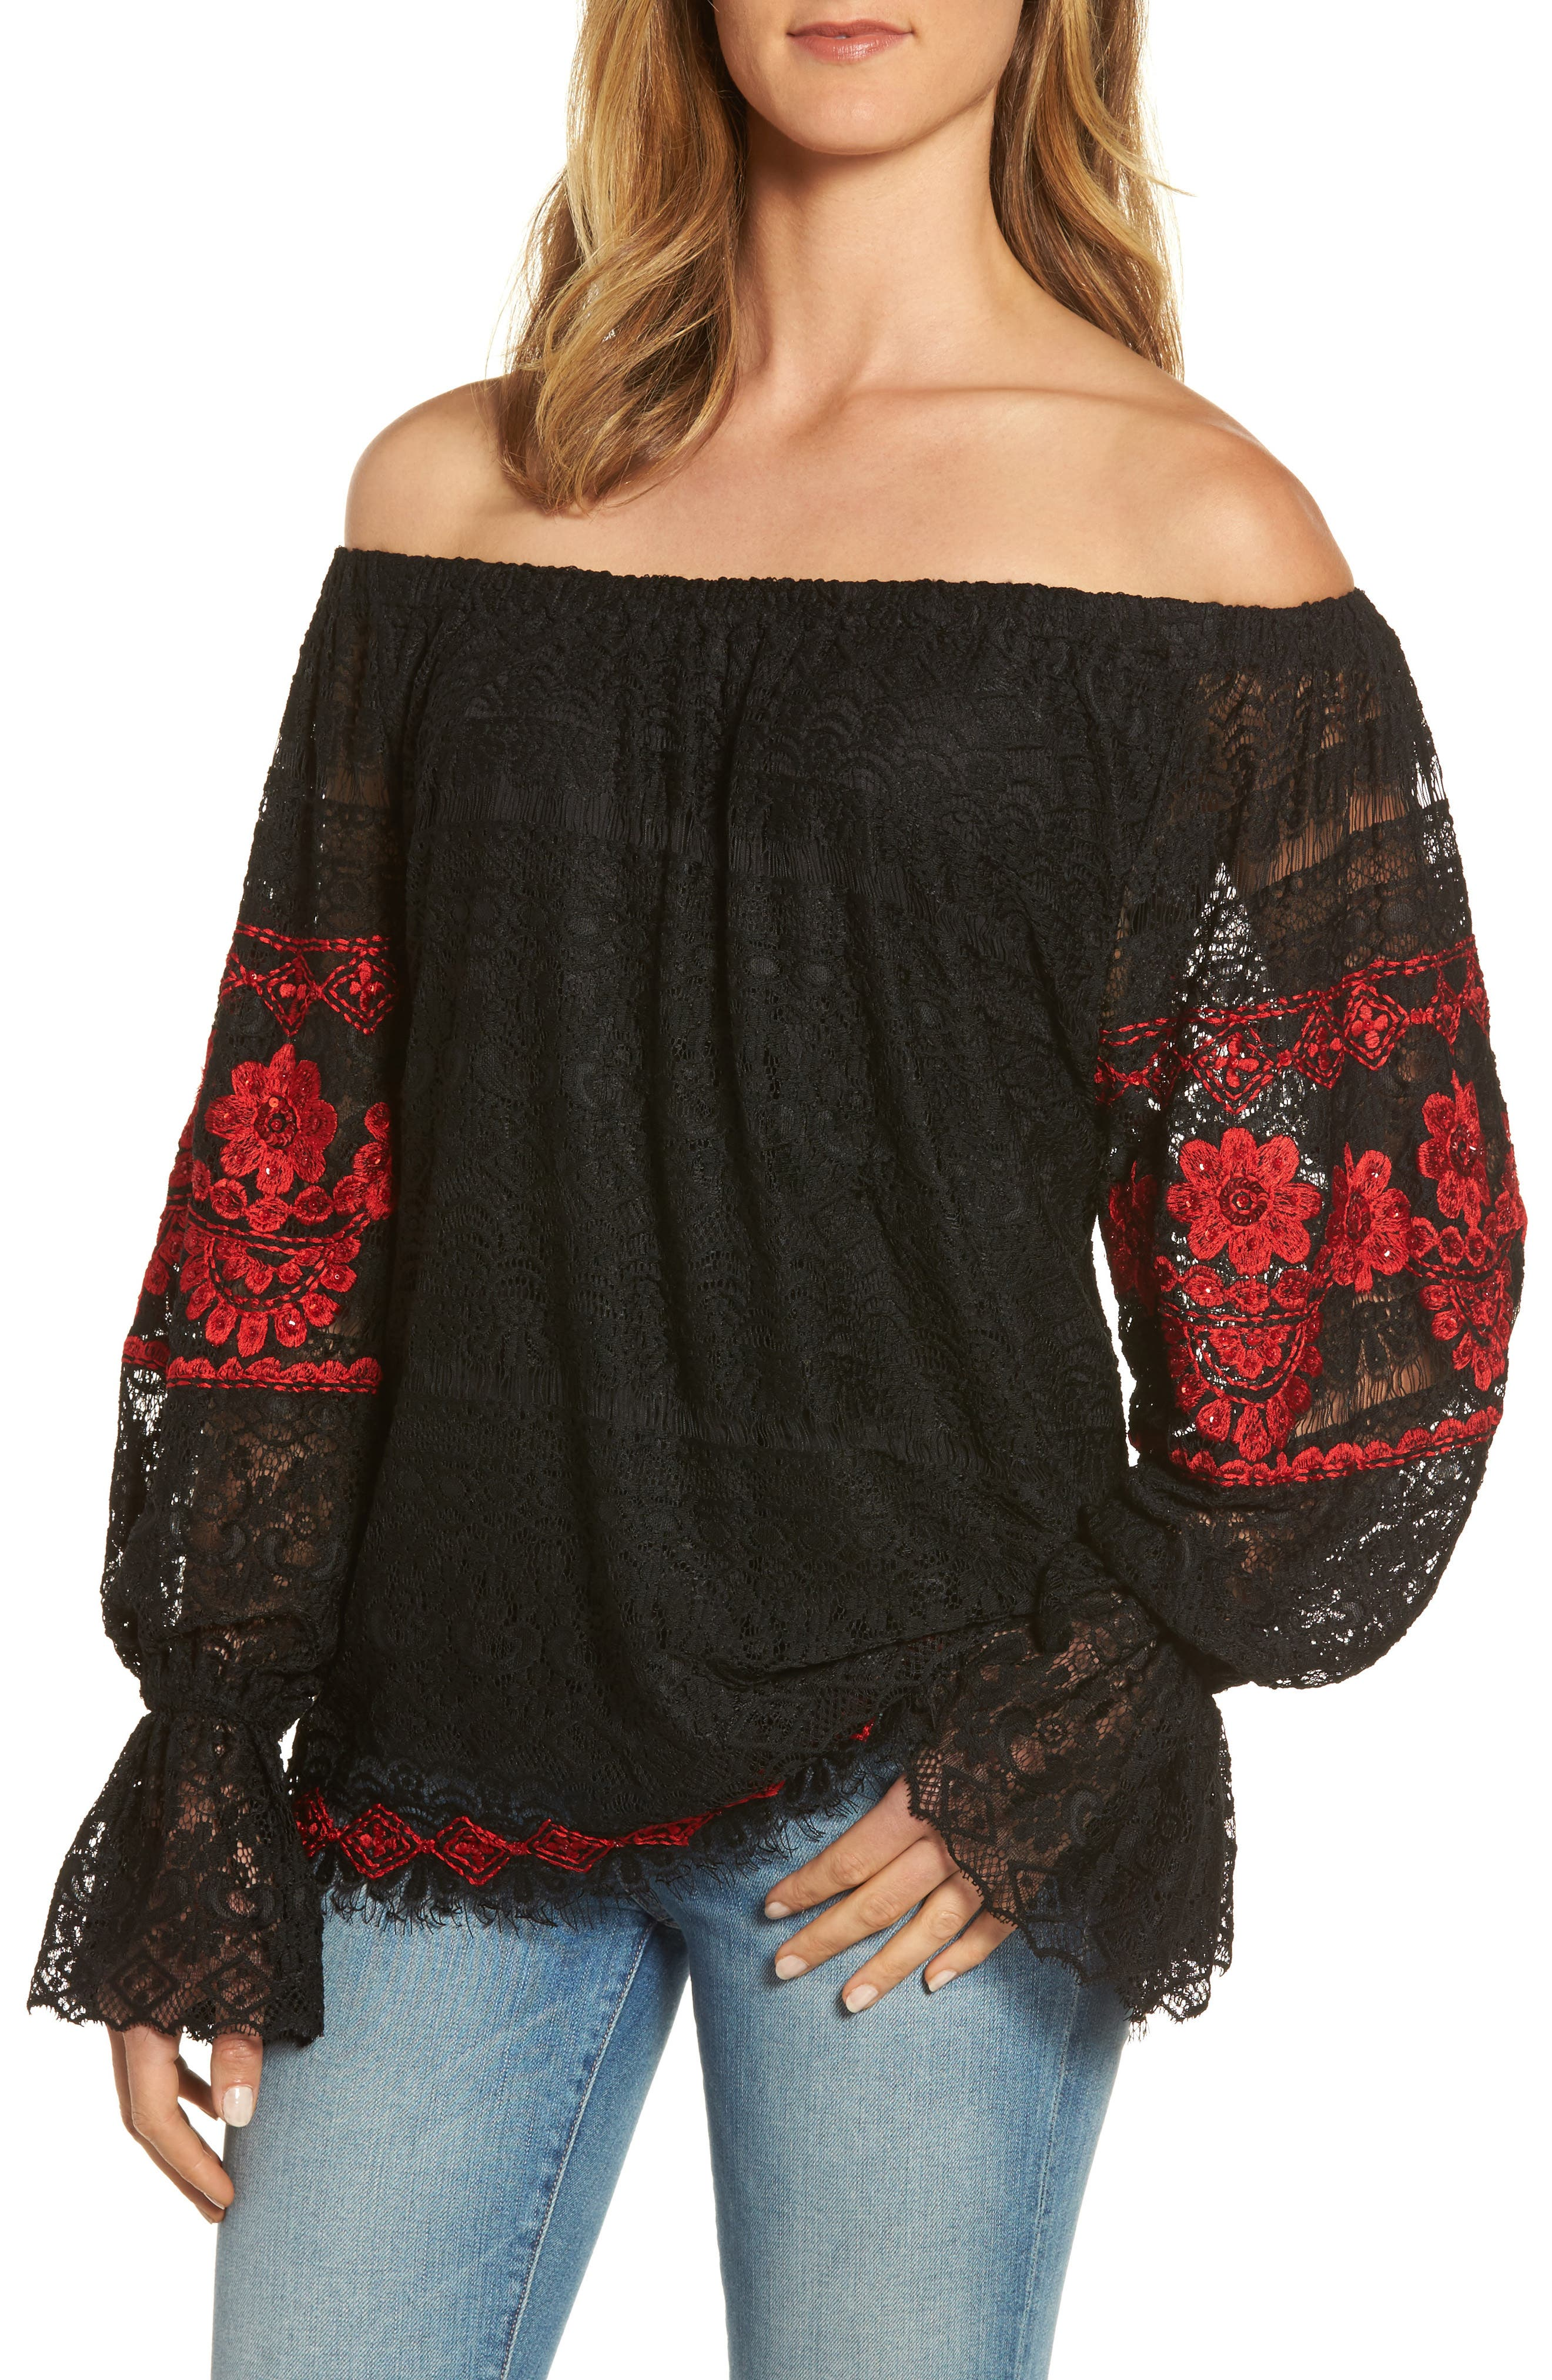 Clare Off the Shoulder Lace Top,                             Main thumbnail 1, color,